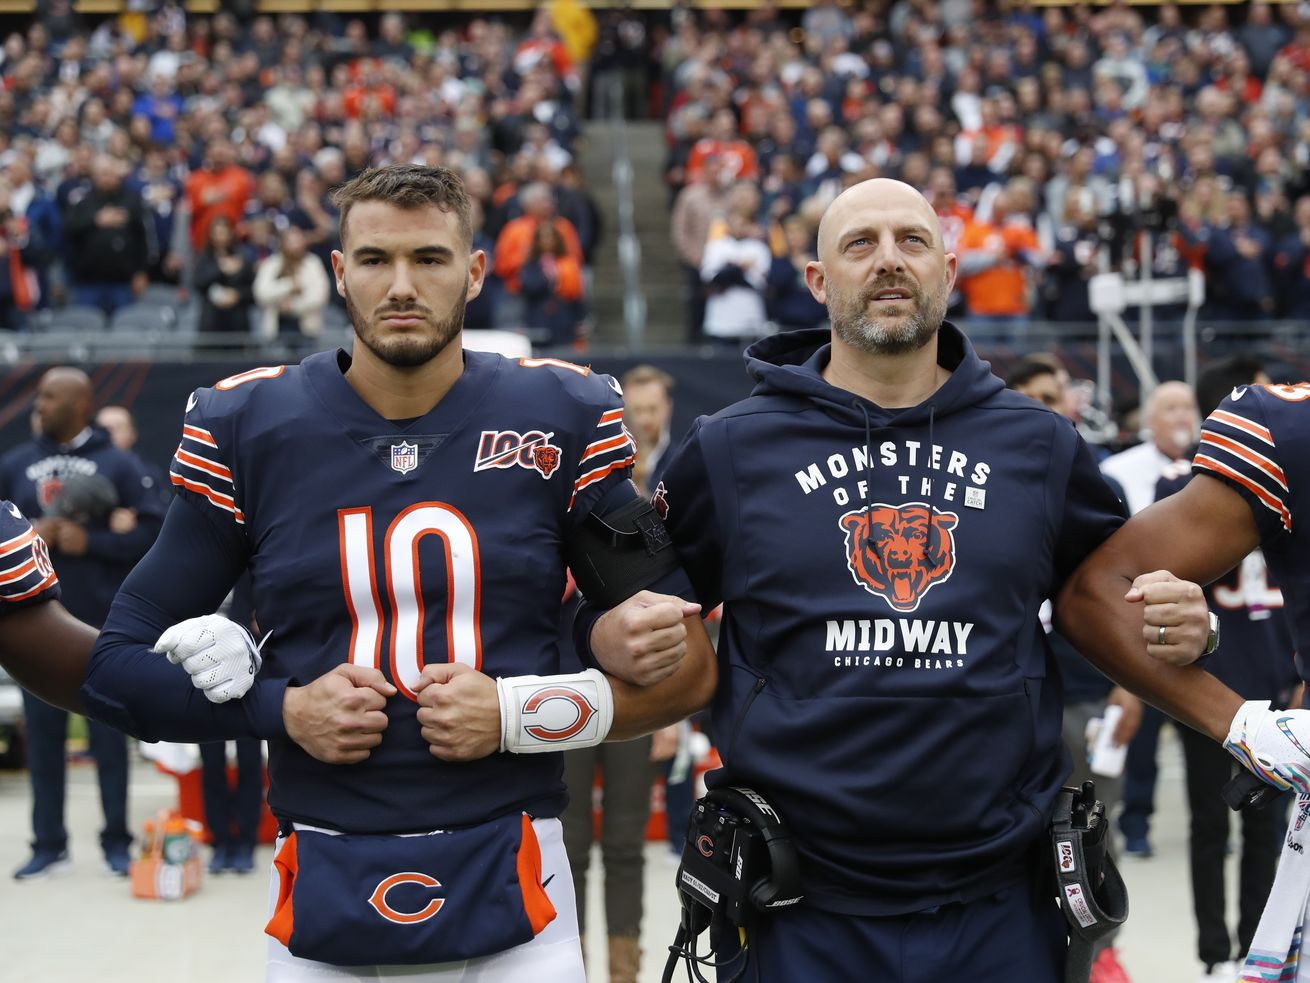 Bears coach Matt Nagy to stick with QB Mitch Trubisky for entire game vs. Lions